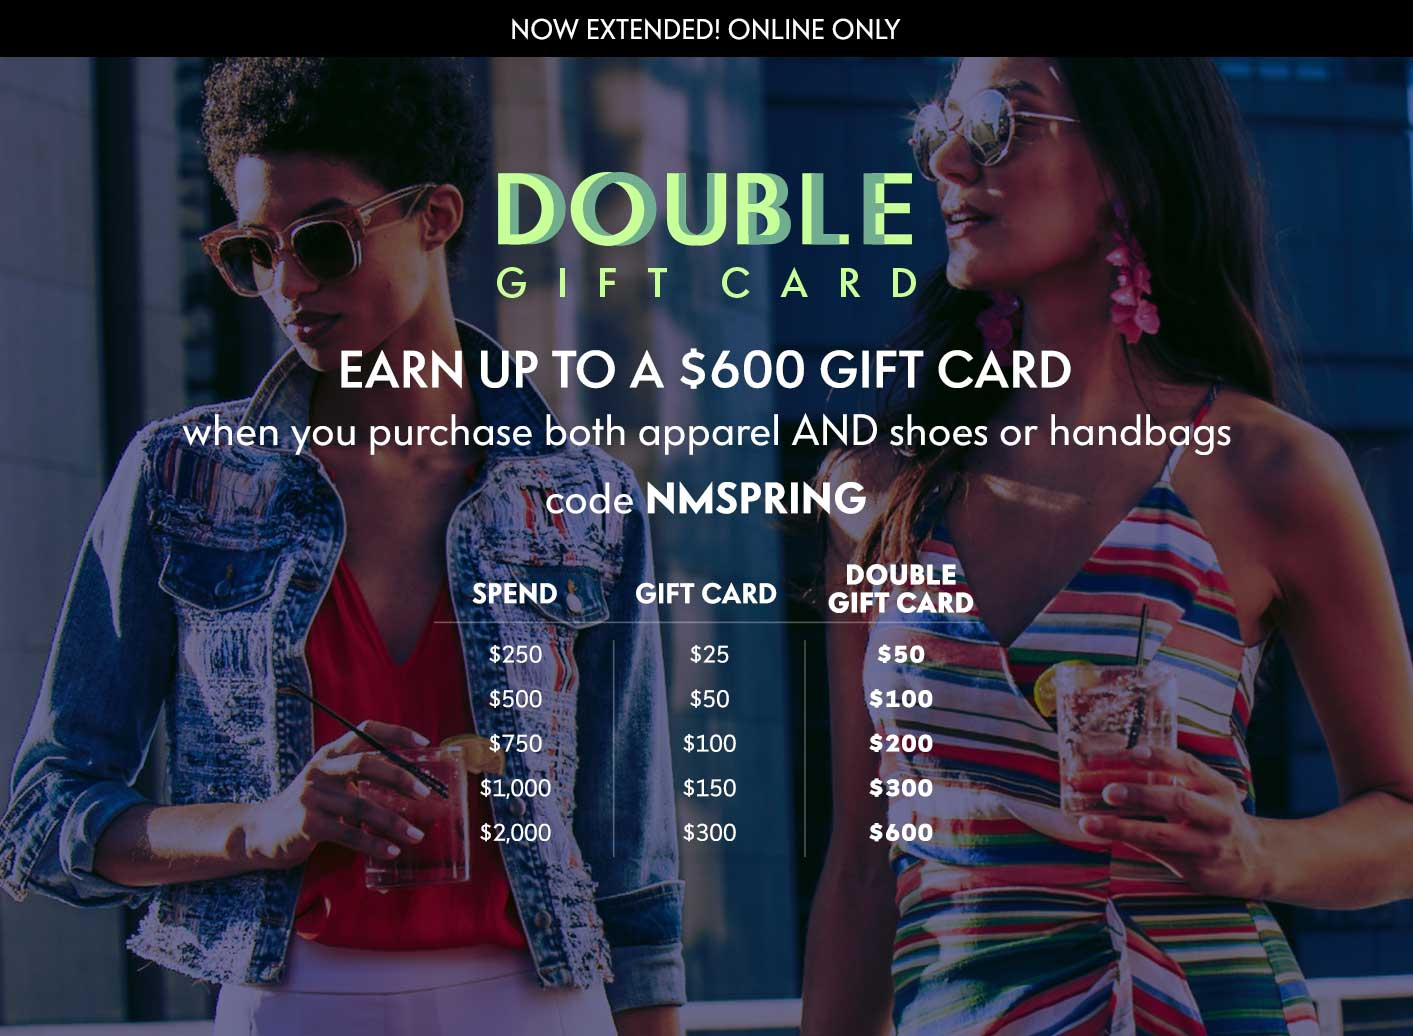 Extended! Earn up to a $600 gift card - Code NMSPRING